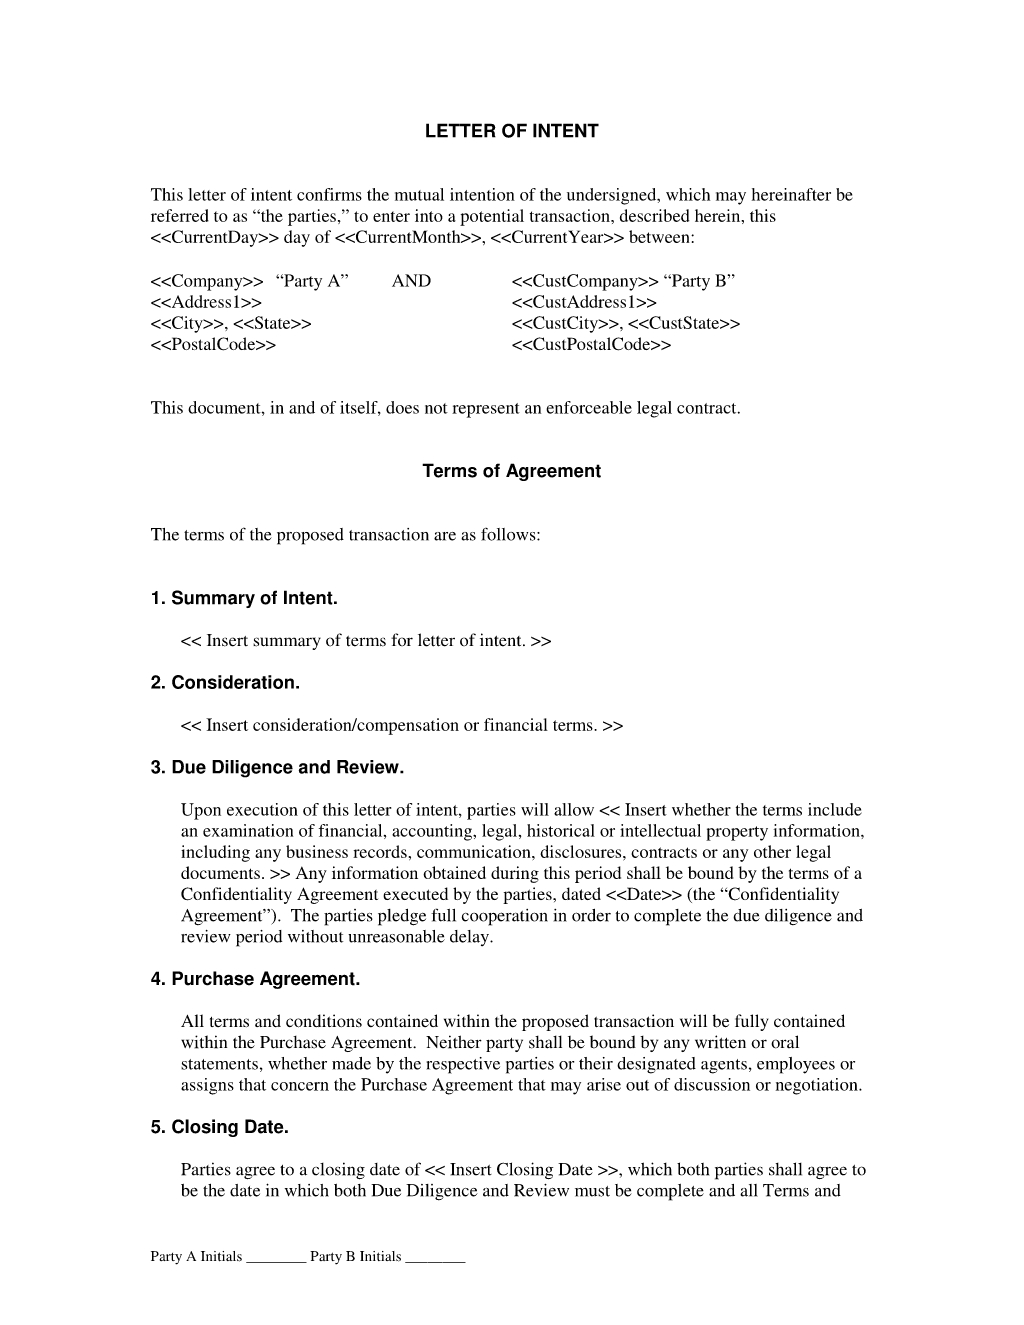 letter of intent example tagalog